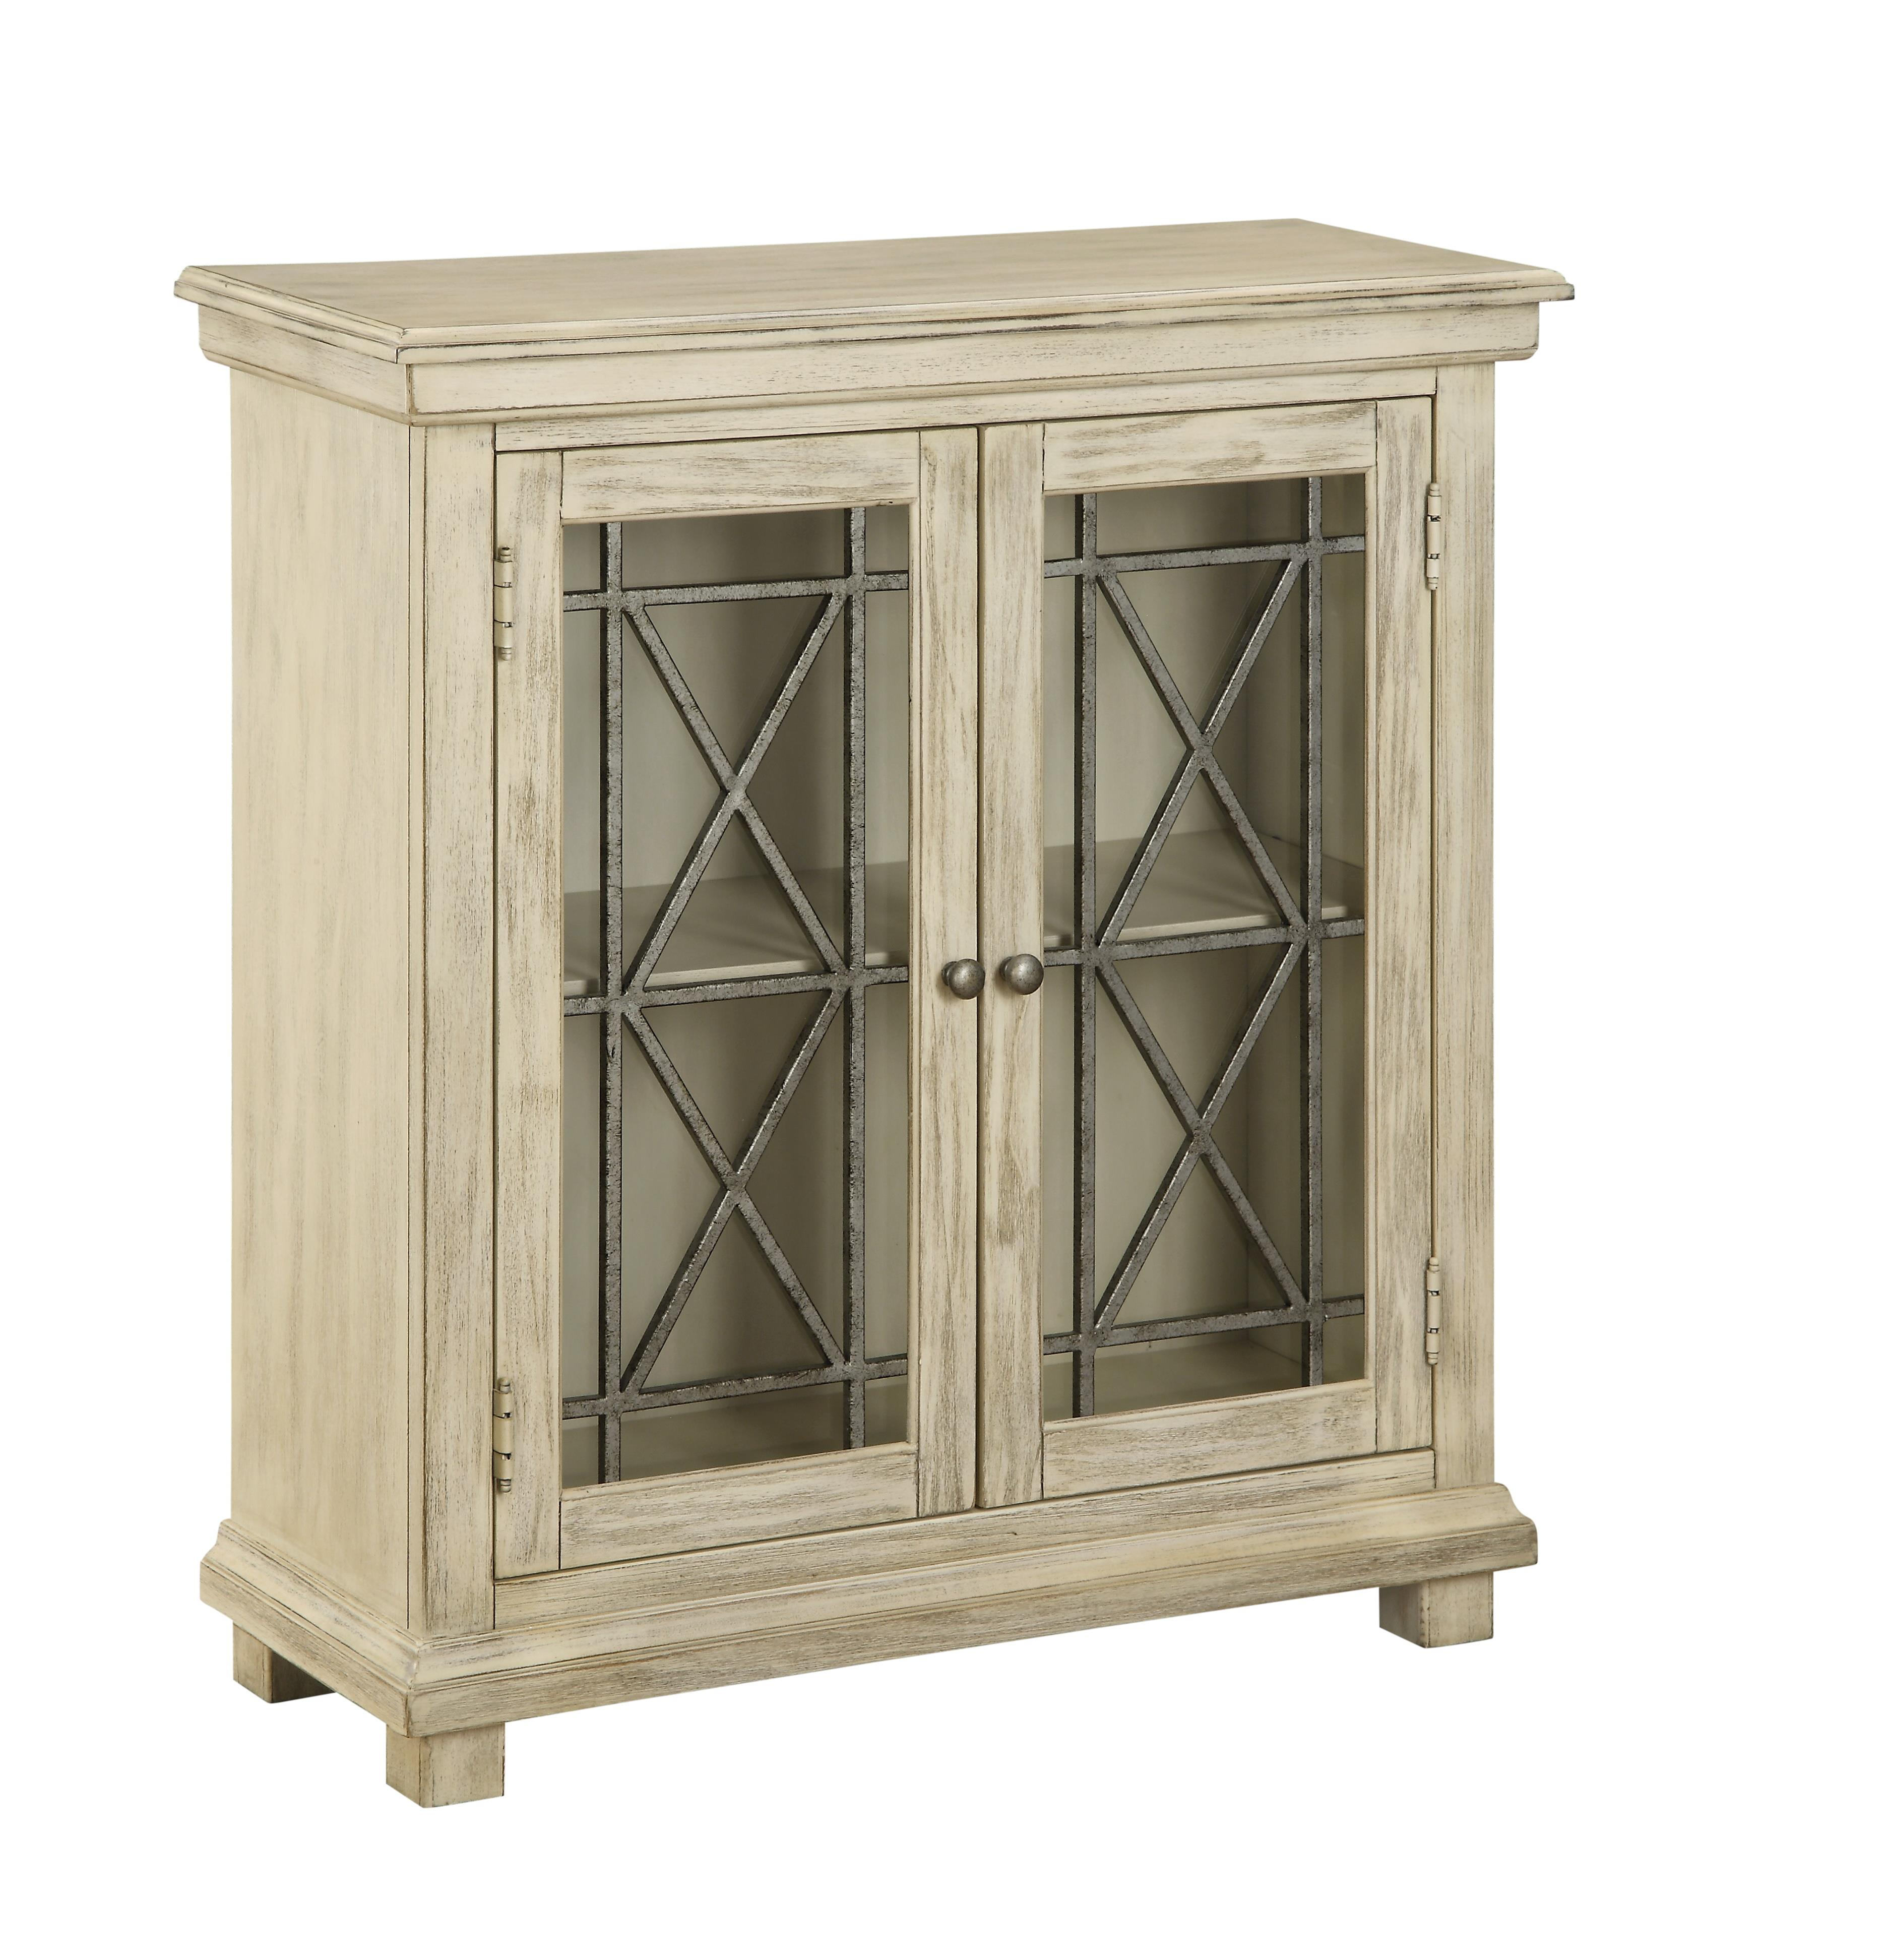 Coast to Coast Imports Coast to Coast Accents Two Door Cabinet - Item Number: 67453